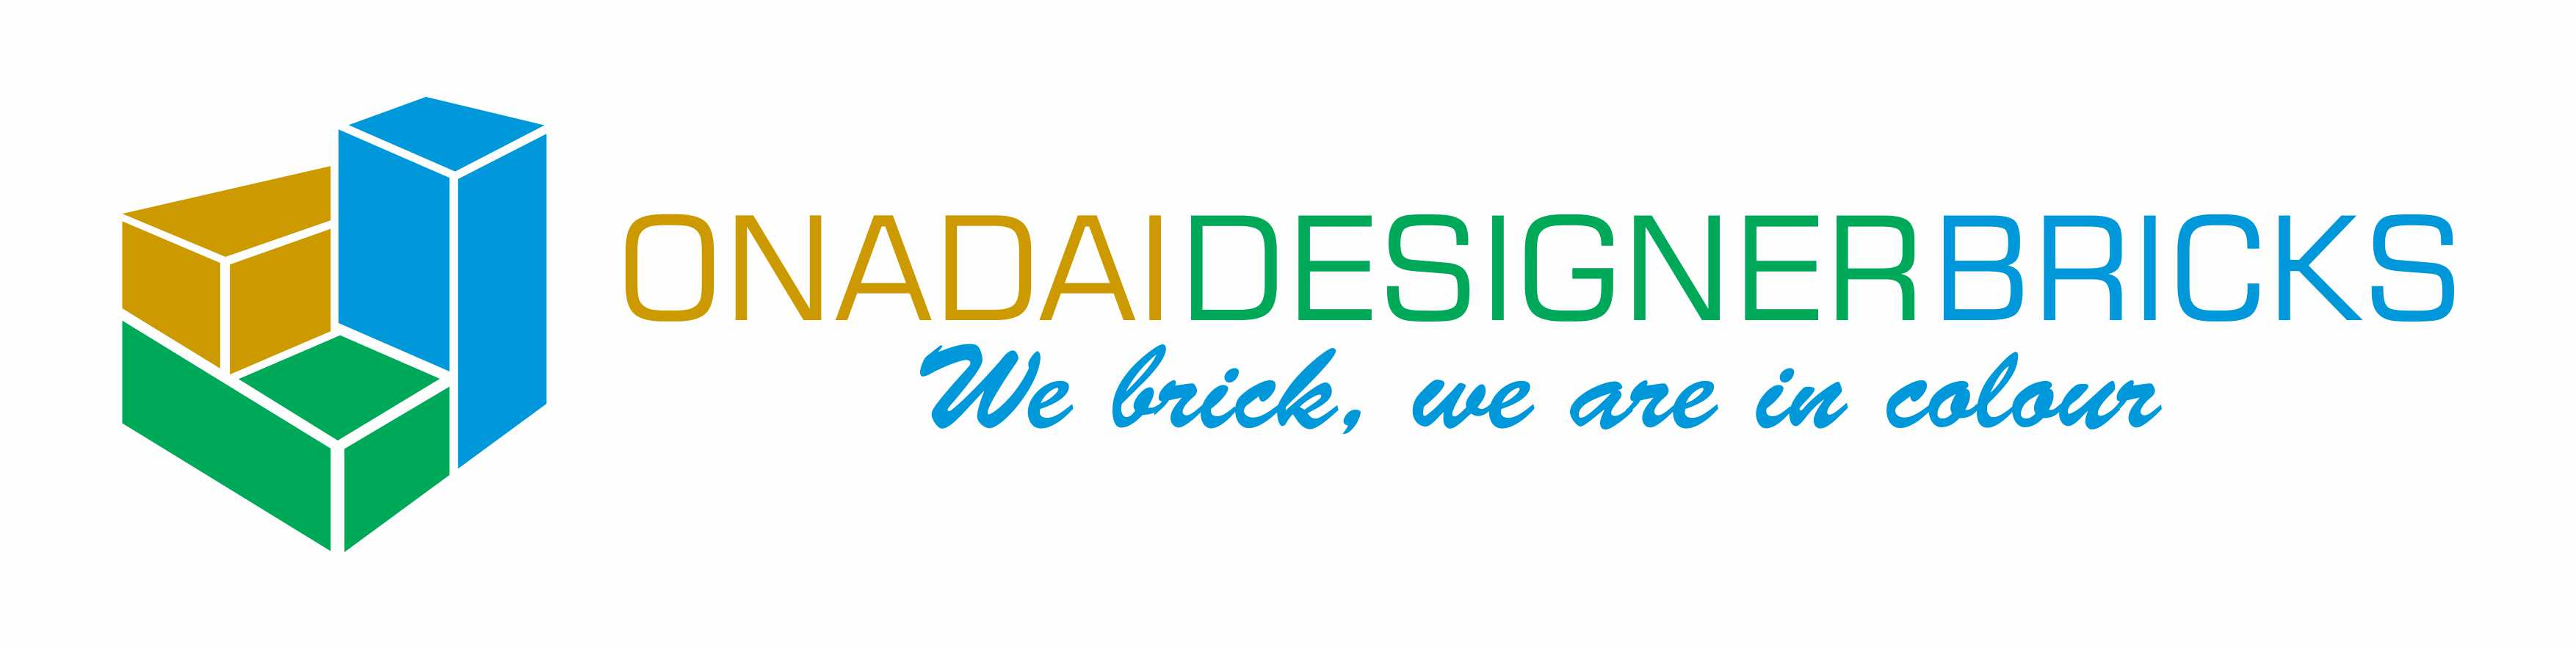 Onadai Designer Bricks